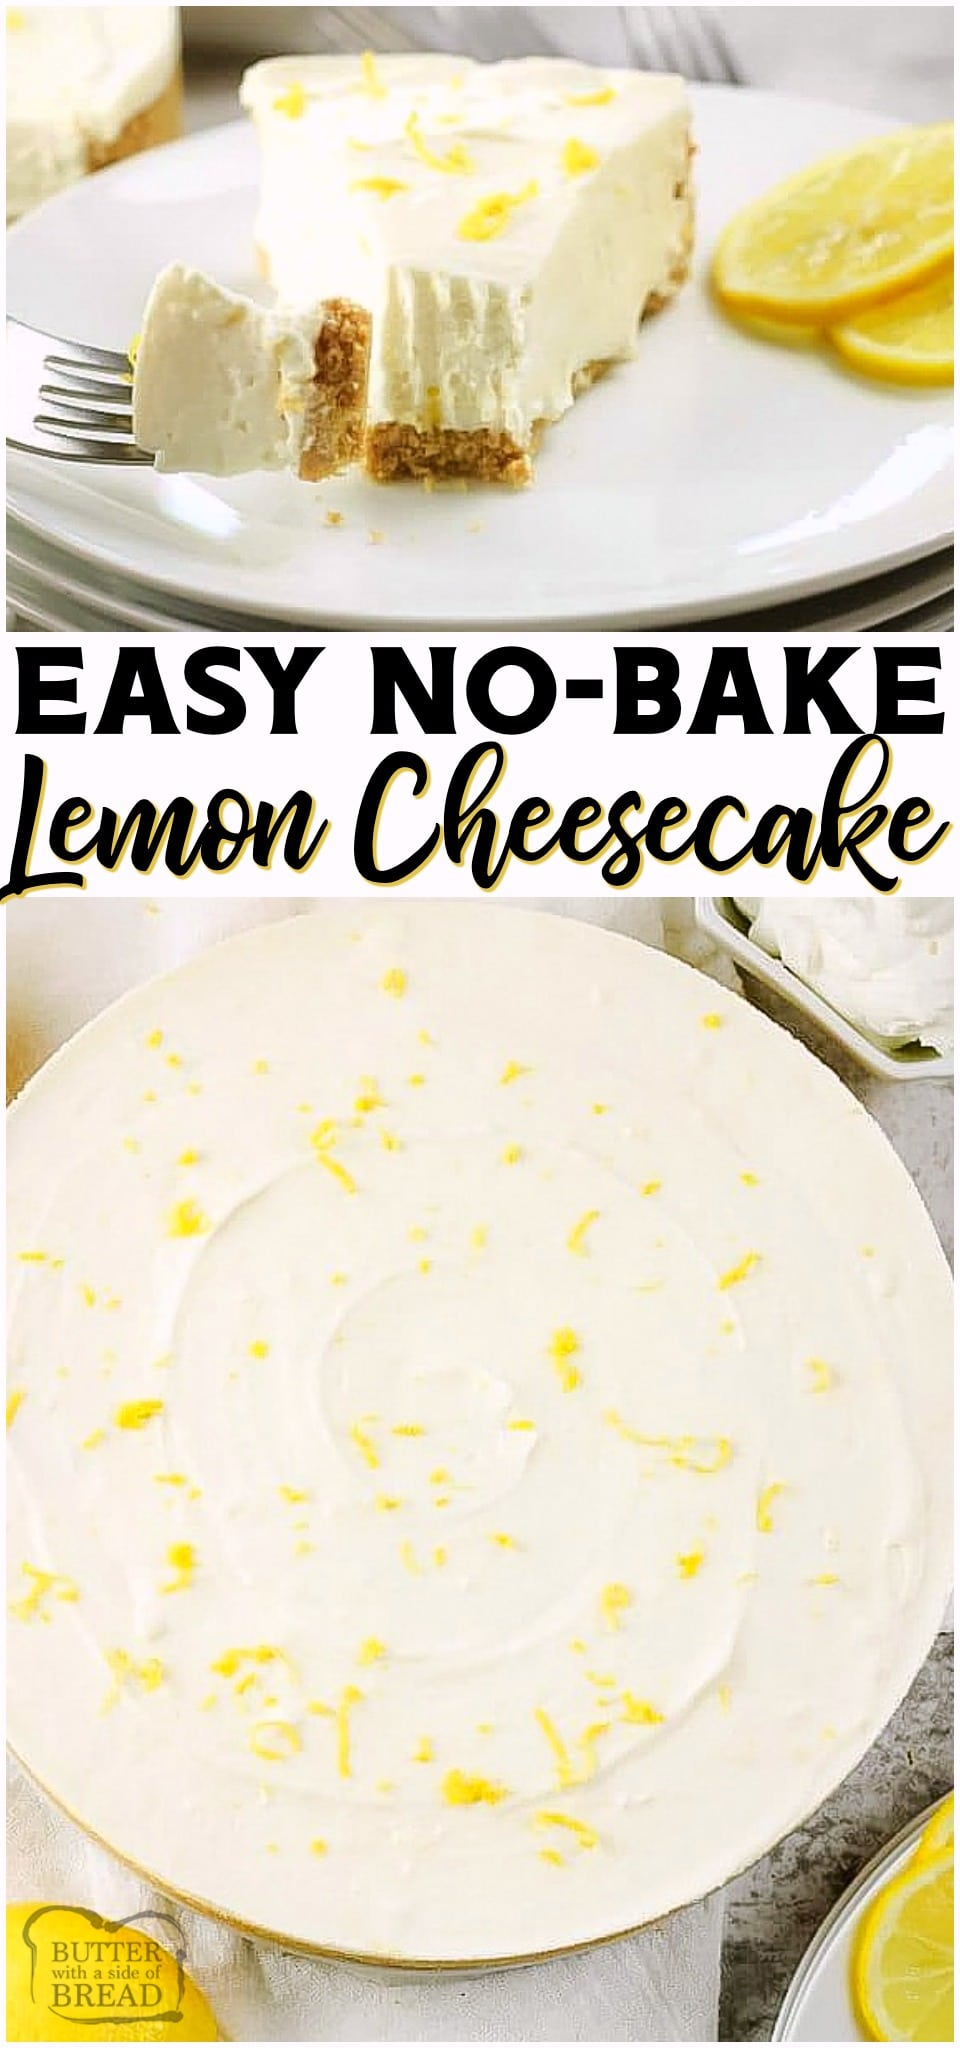 No Bake Lemon Cheesecake is a simple no bake dessert with only a few ingredients! Easy Lemon Cheesecake recipe with bright, fresh lemon flavor in a creamy no-bake cheesecake.#lemon #cheesecake #nobake #dessert #easyrecipe #recipe from BUTTER WITH A SIDE OF BREAD